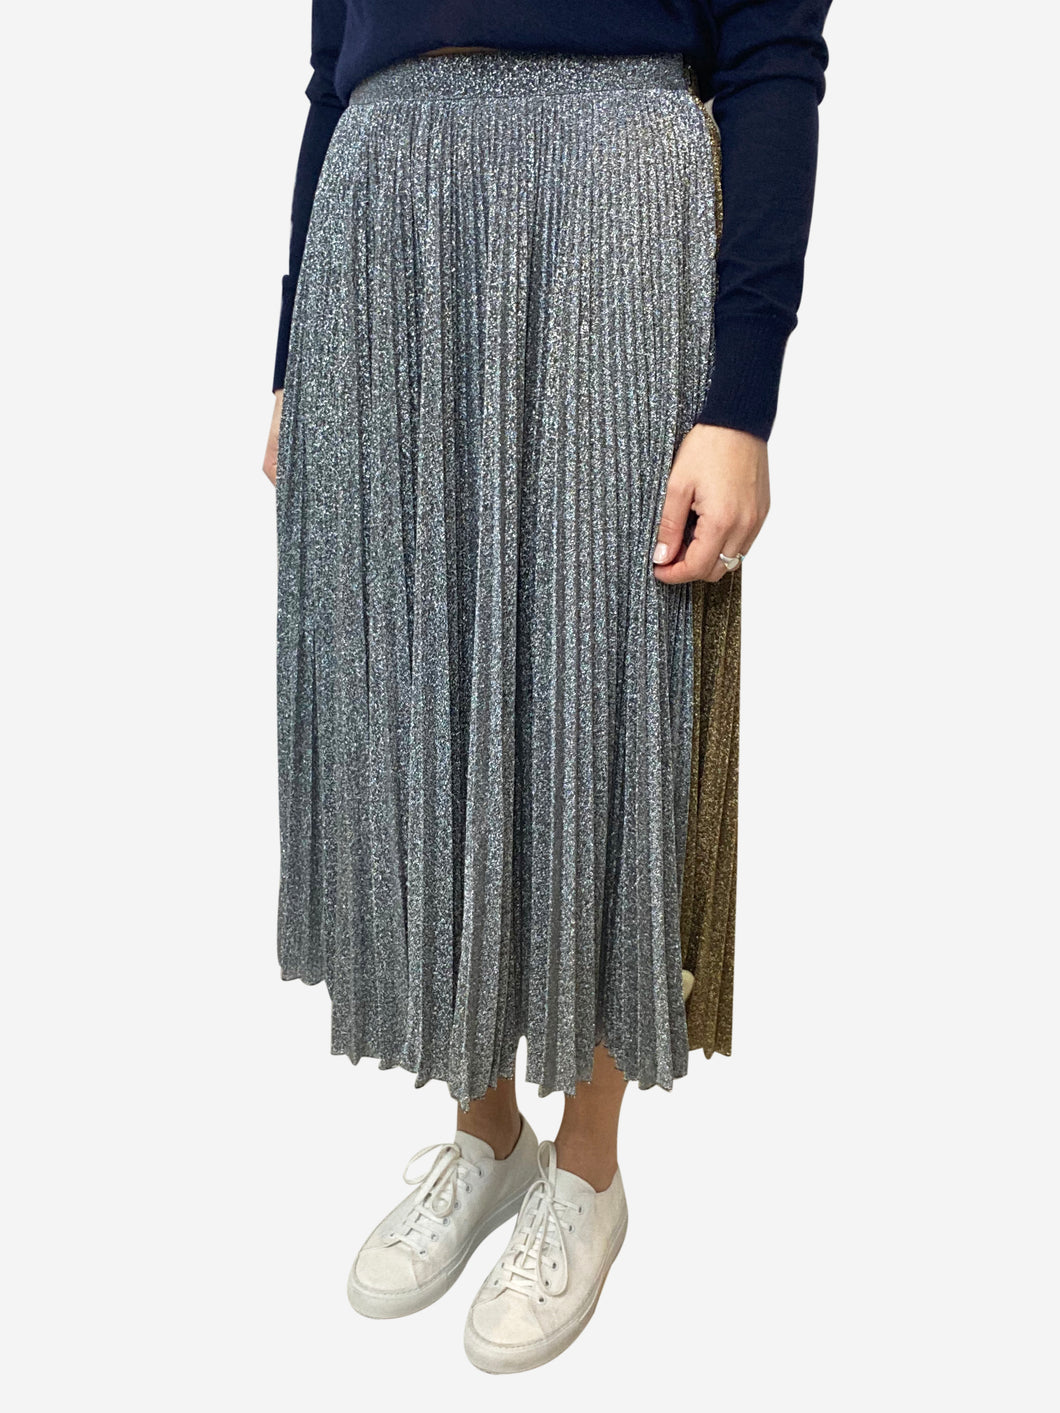 Gold and silver lurex pleated midi skirt- size UK 10